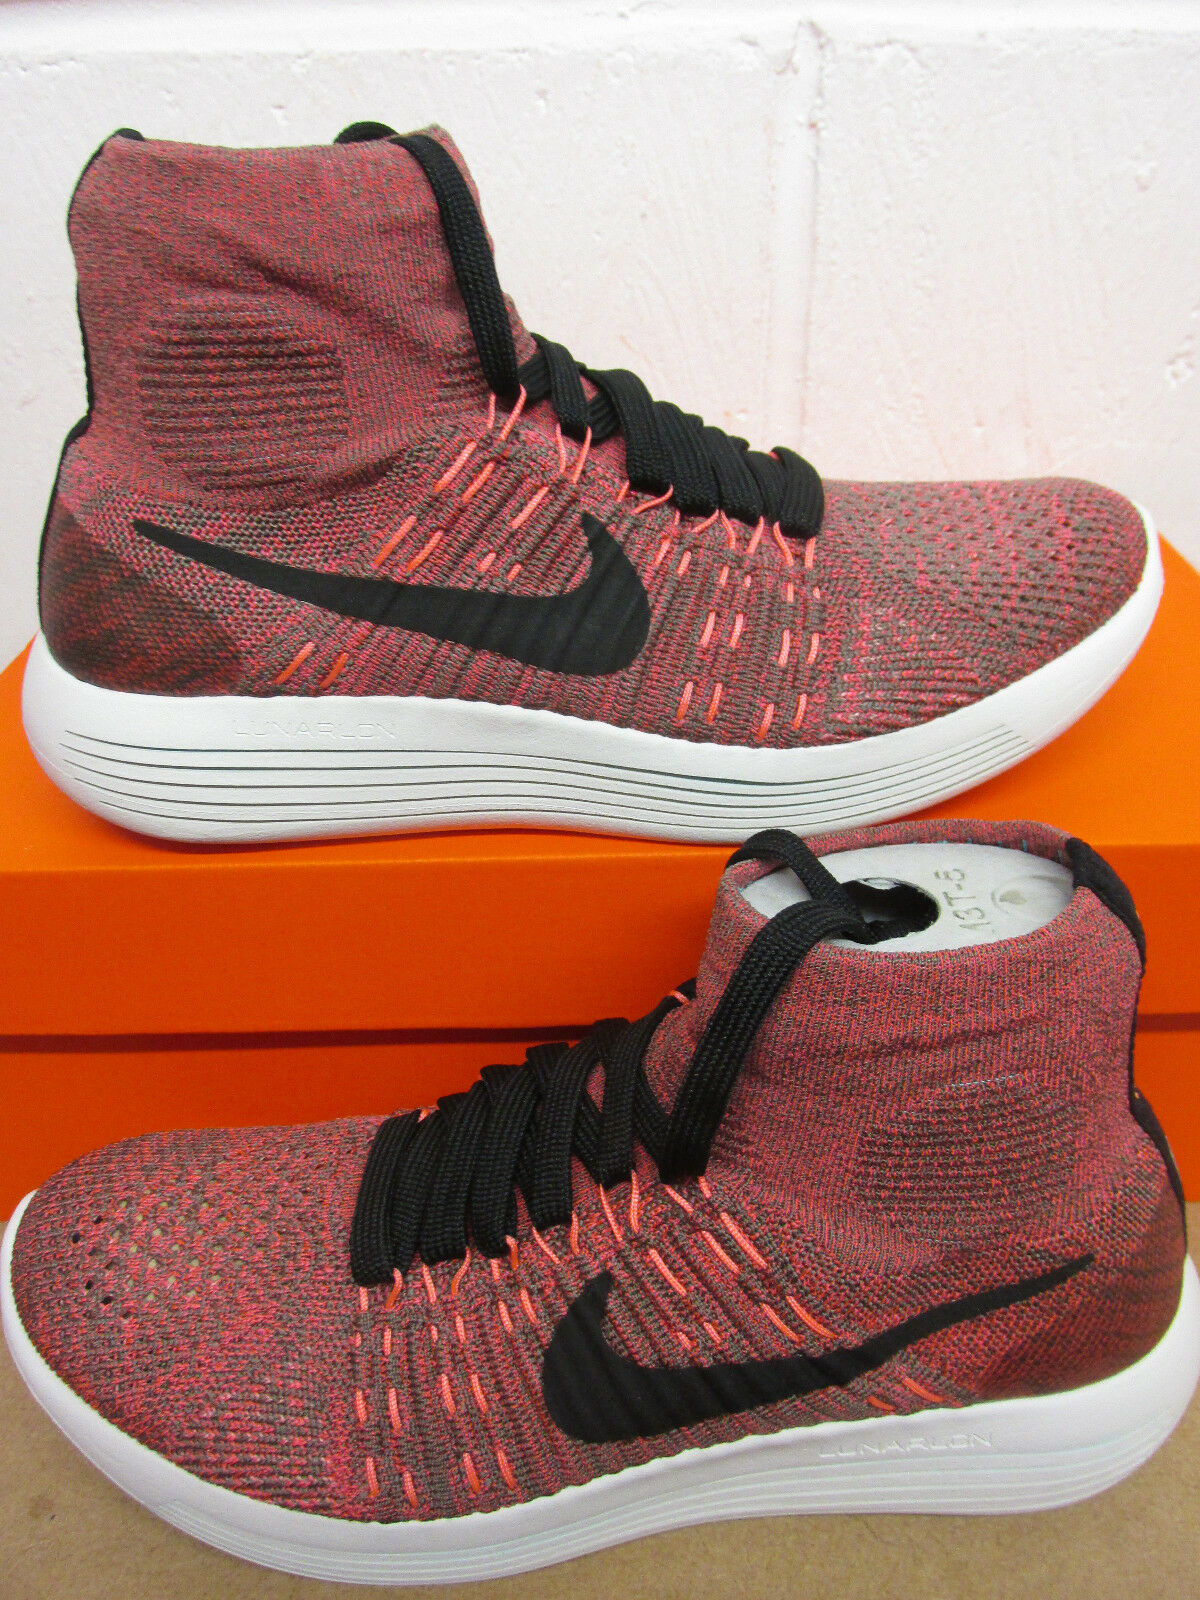 Nike femmes Lunarepic Flyknit Running Trainers 818677 200 Sneakers Chaussures